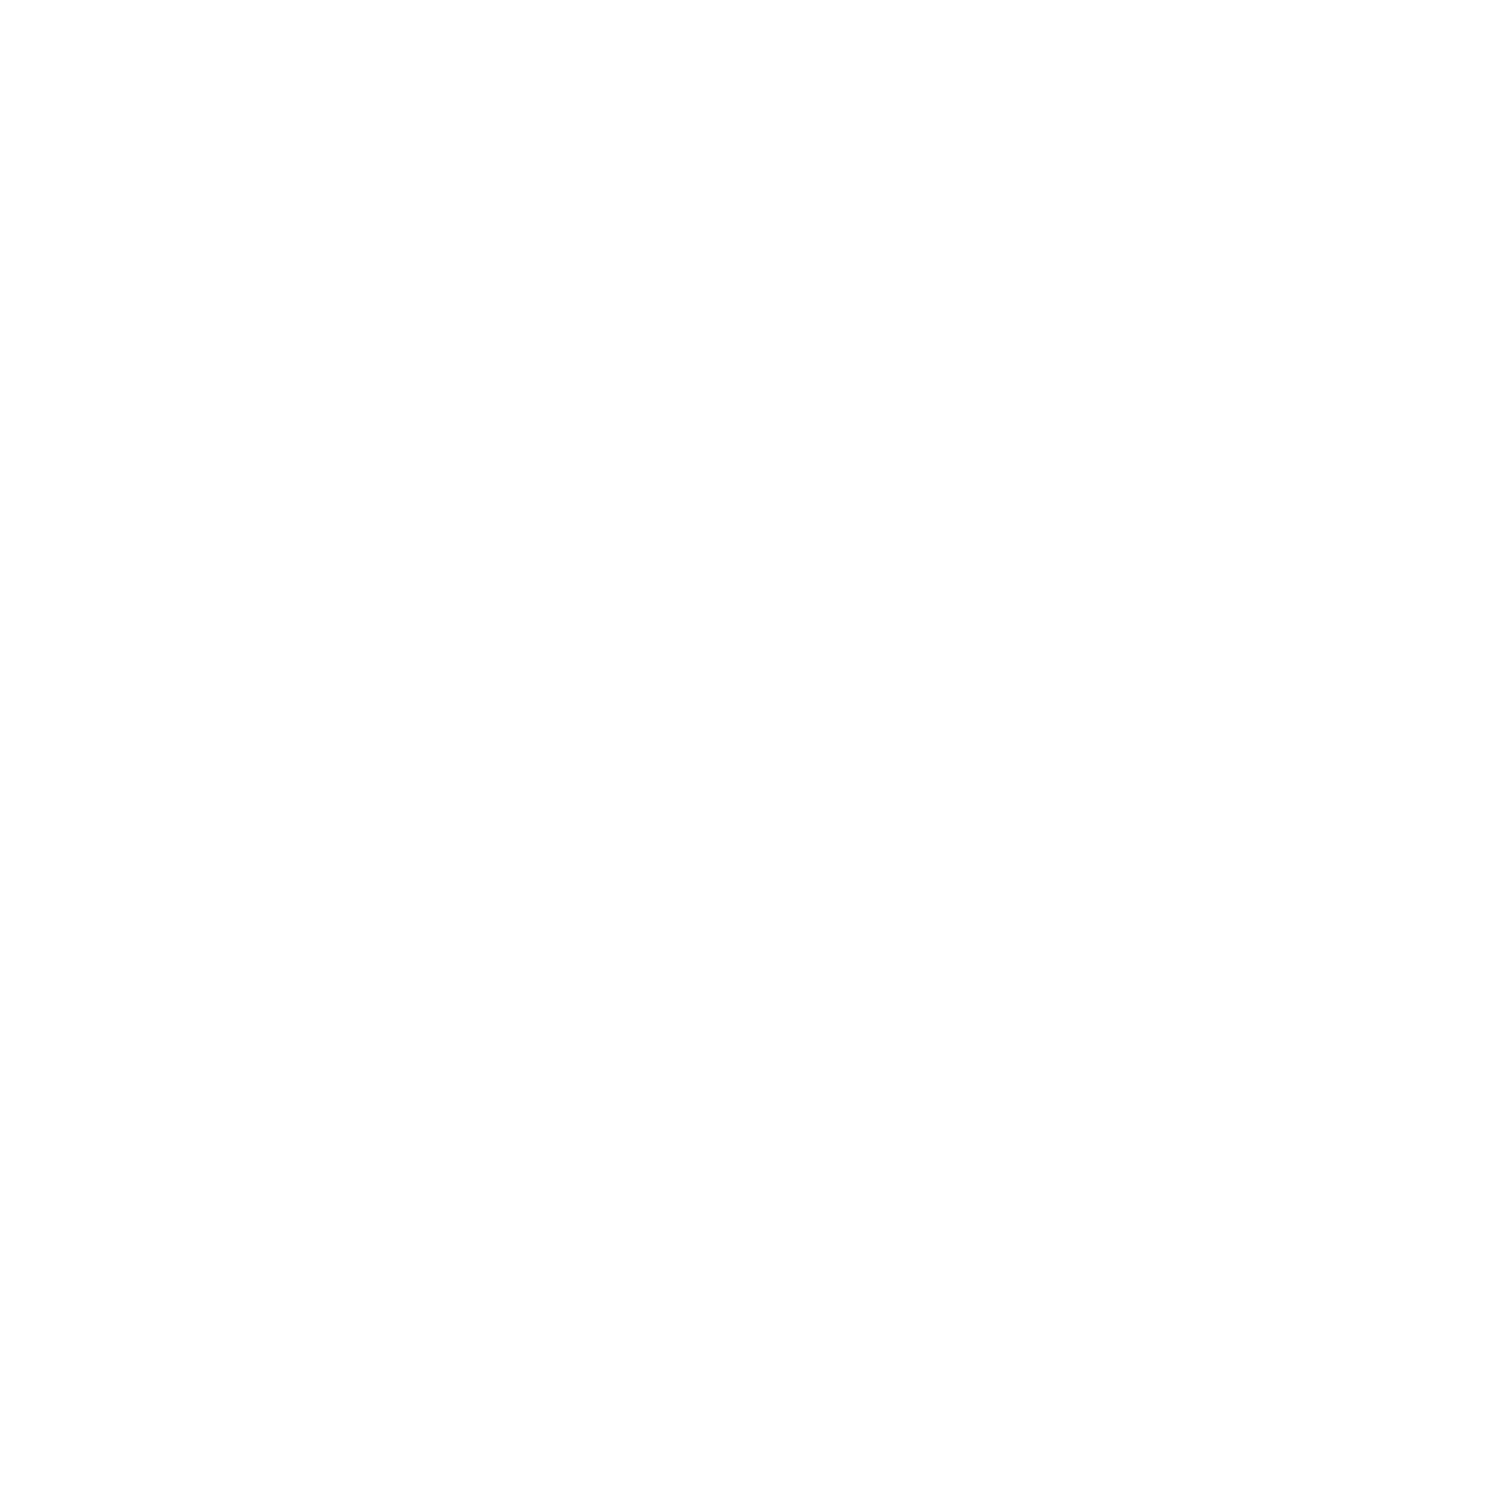 Arena Alliance News